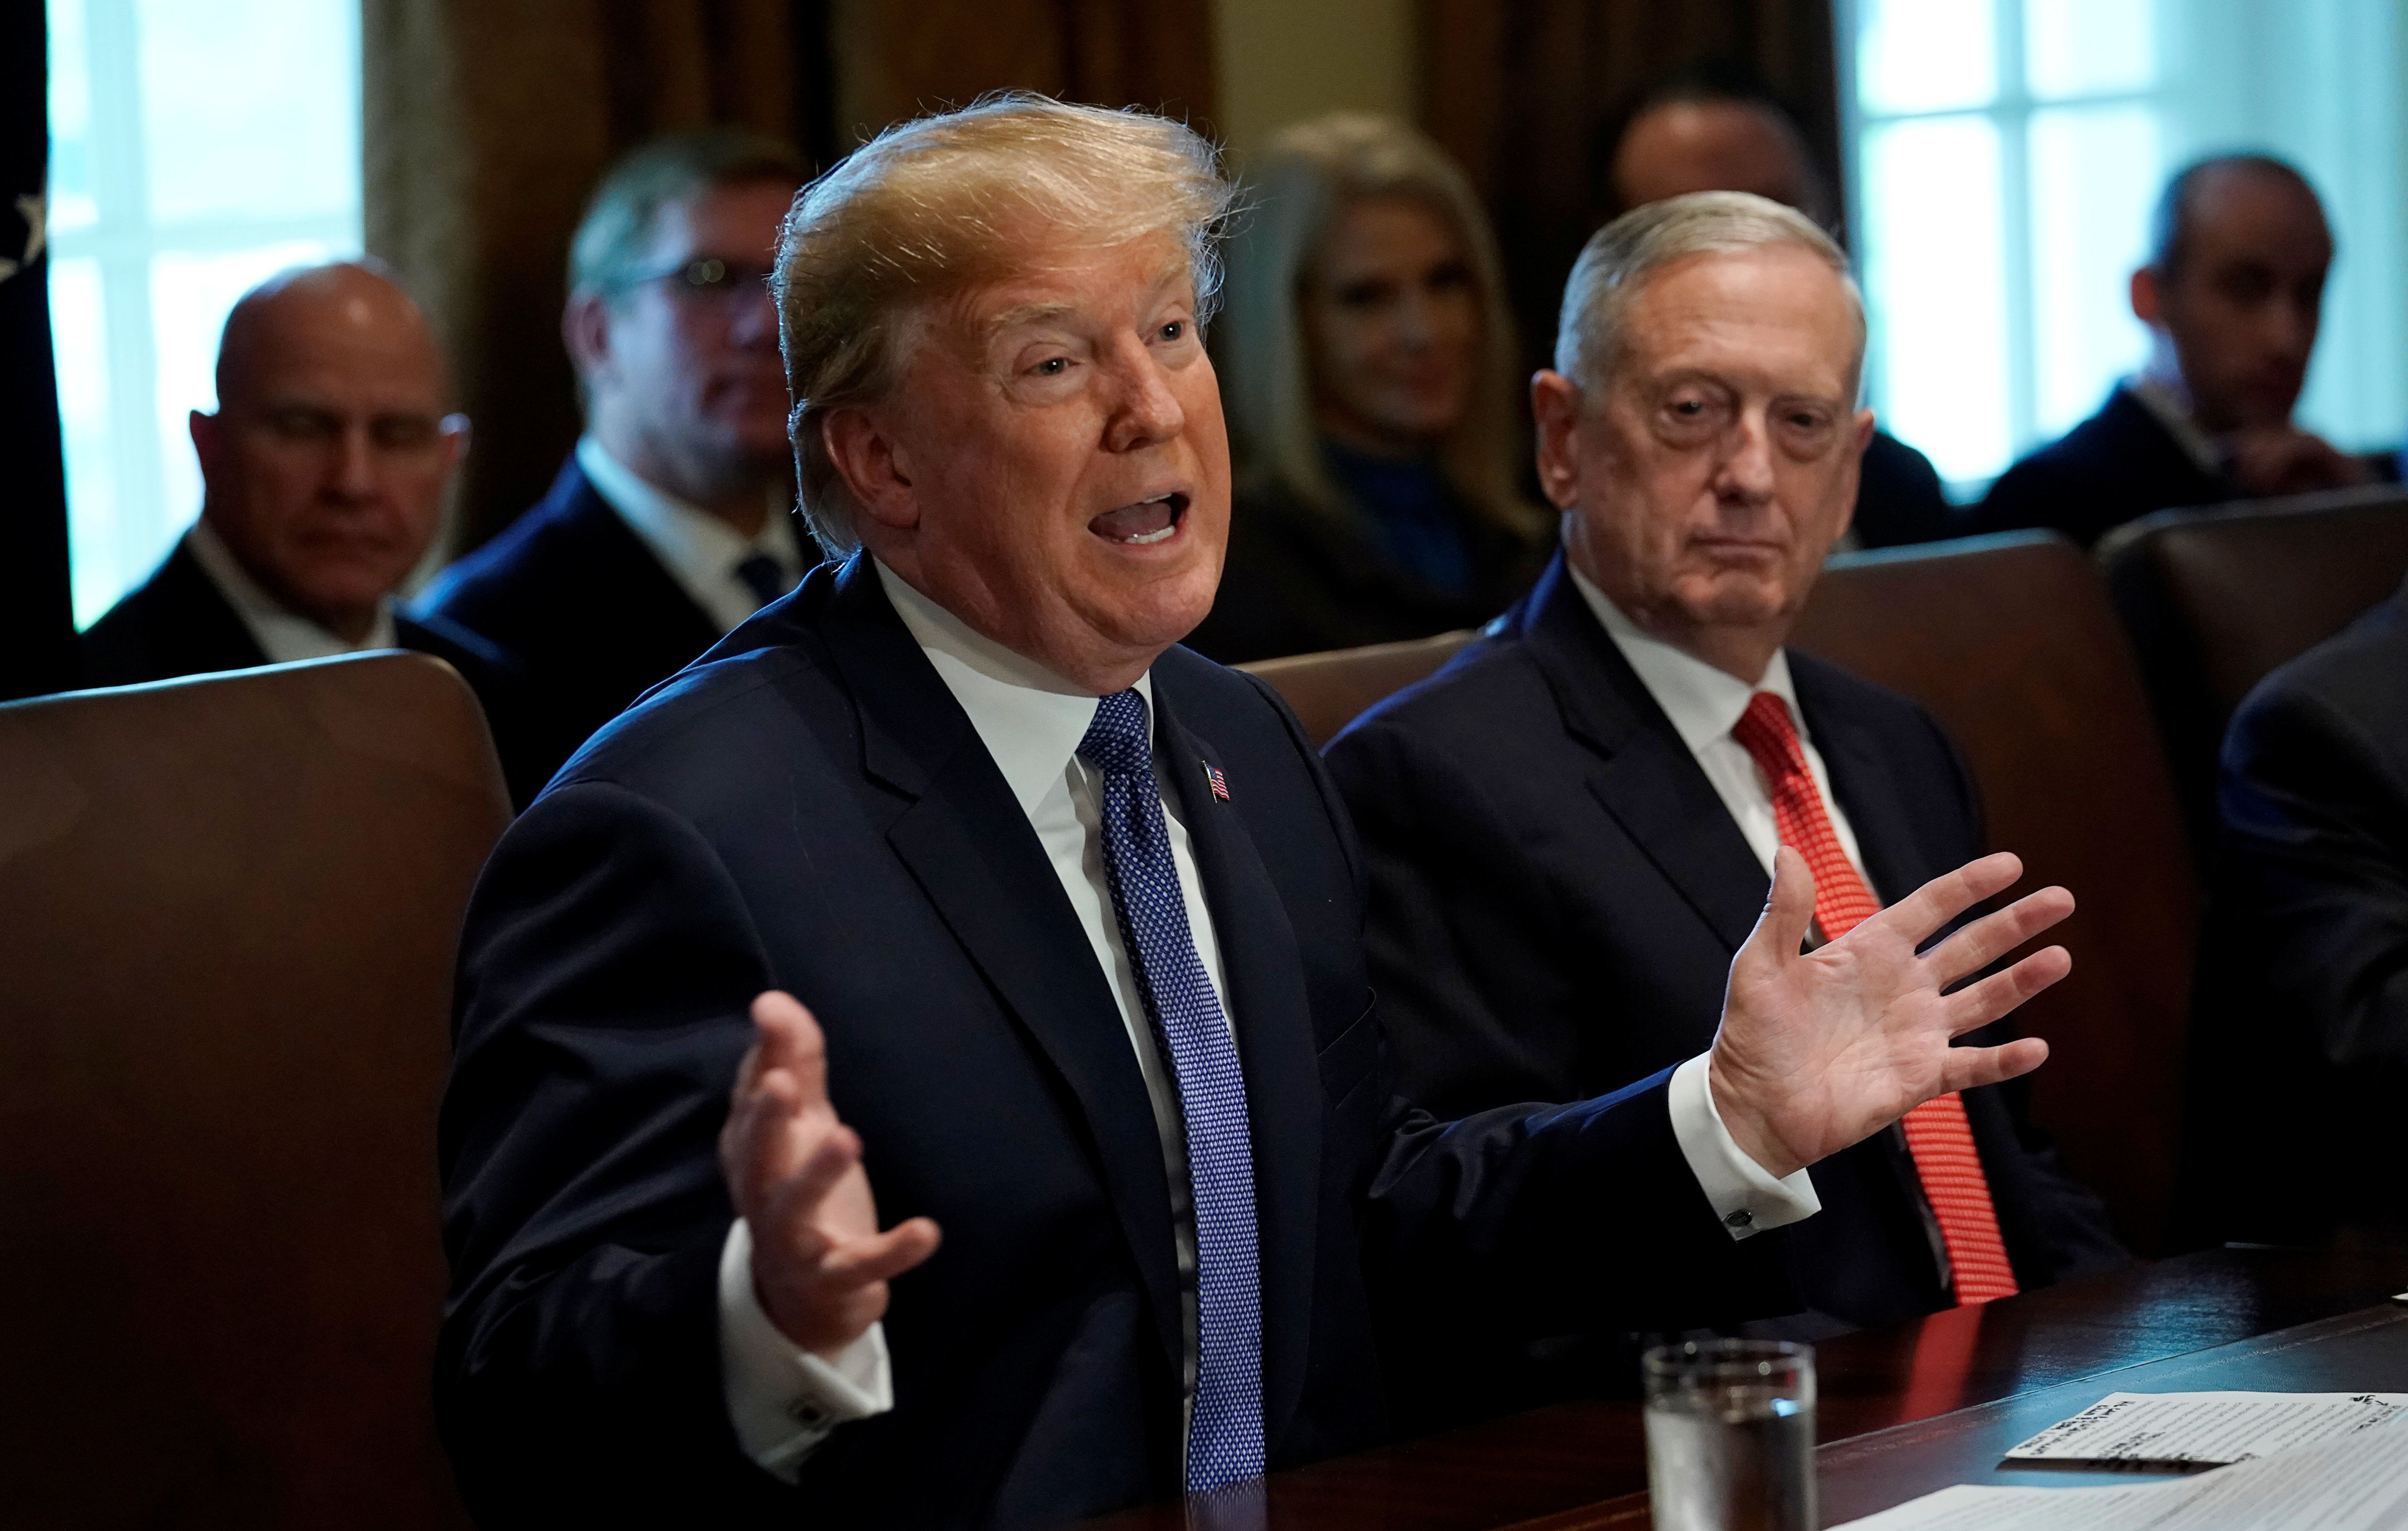 With Secretary of Defense James Mattis at his side, U.S. President Donald Trump speaks during a cabinet meeting at the White House in Washington, U.S., November 1, 2017.  REUTERS/Kevin Lamarque